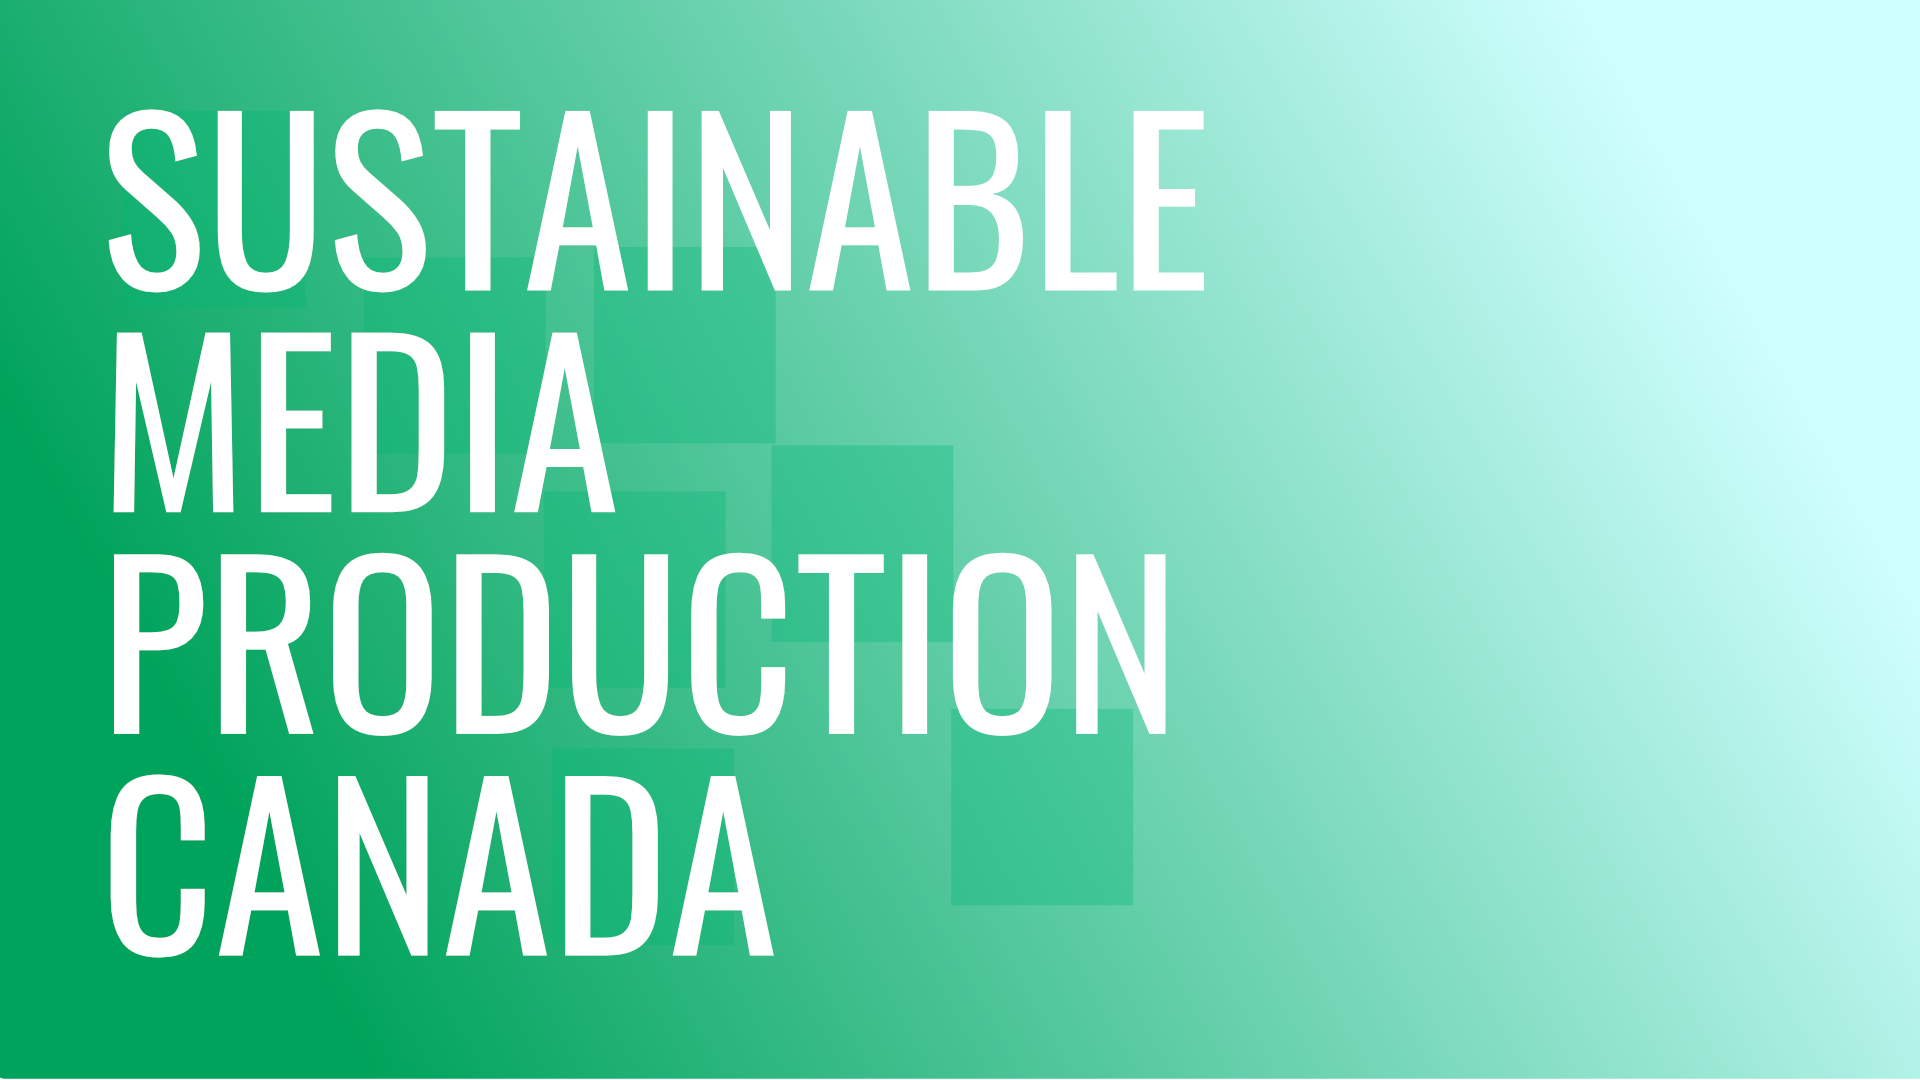 Sustainable Media Production Canada